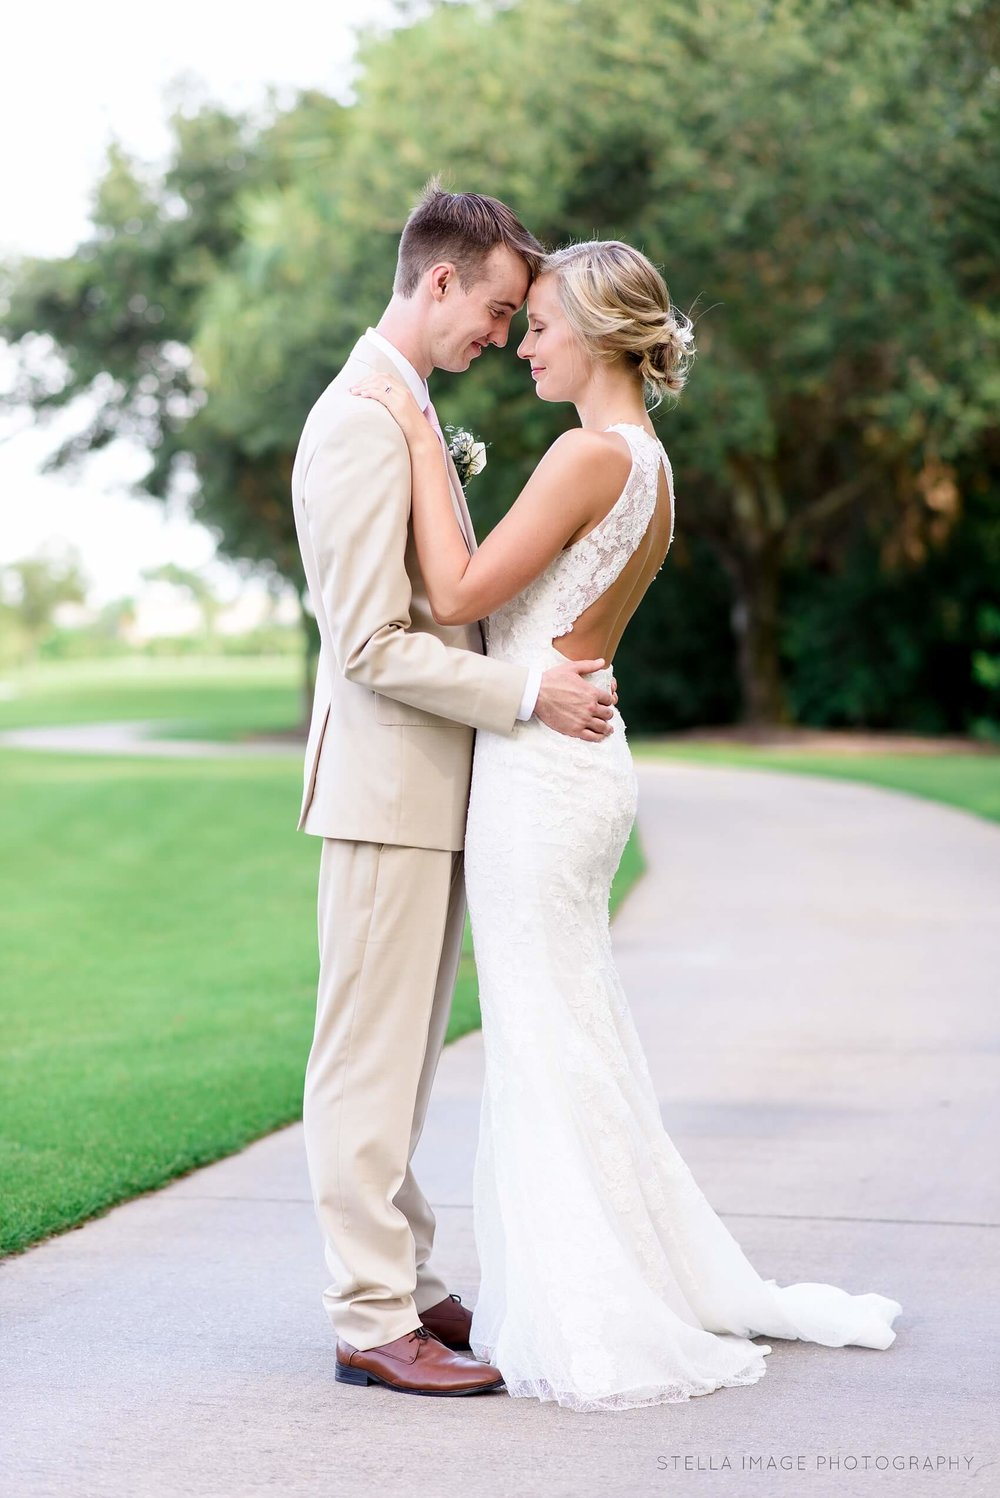 Bride and groom share a hug on the golf course at mayacoo lakes country club after wedding.